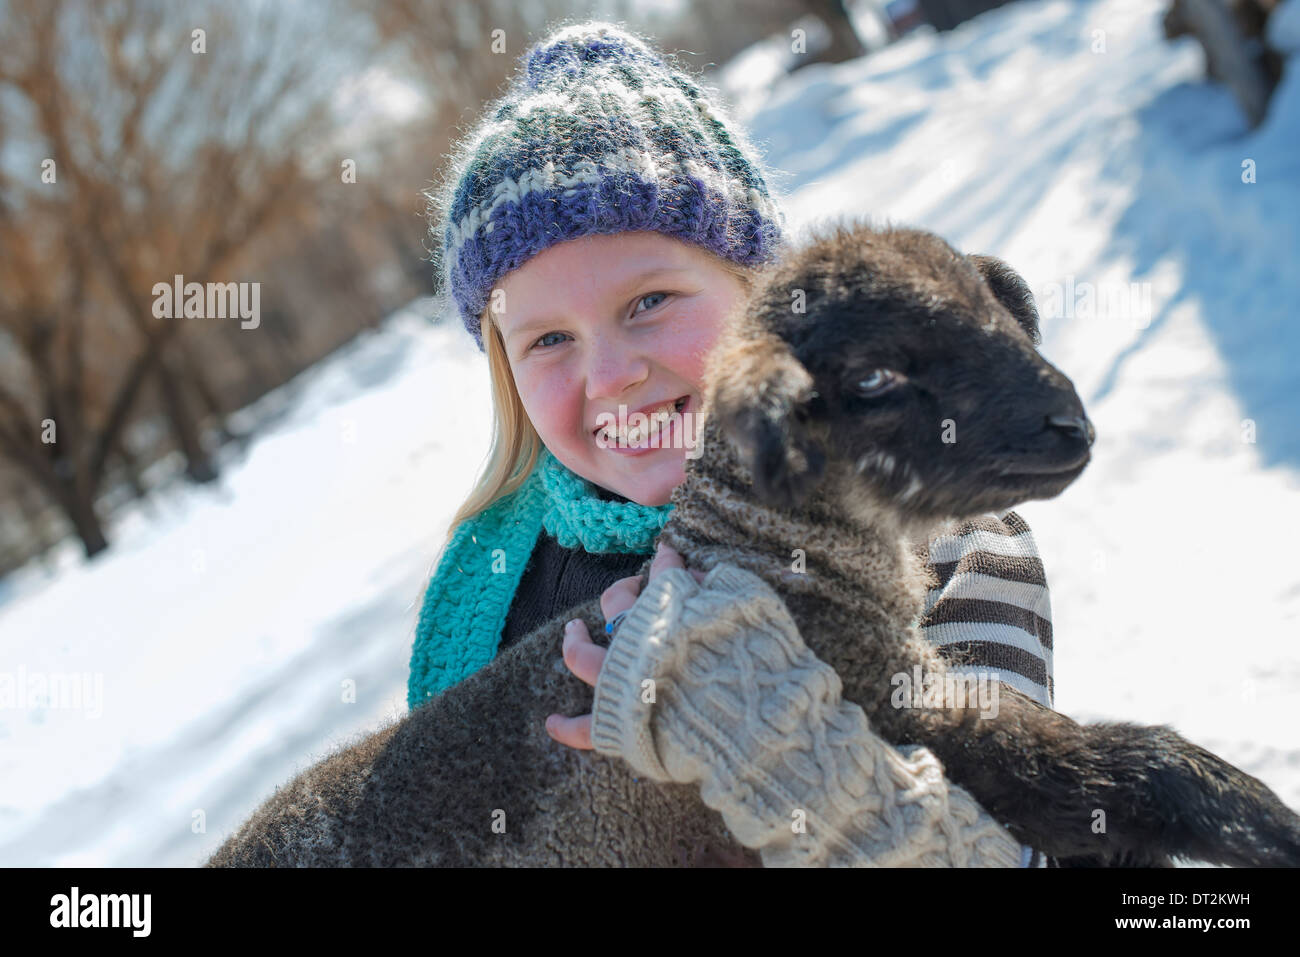 Winter scenery with snow on the ground A young girl holding a young lamb - Stock Image